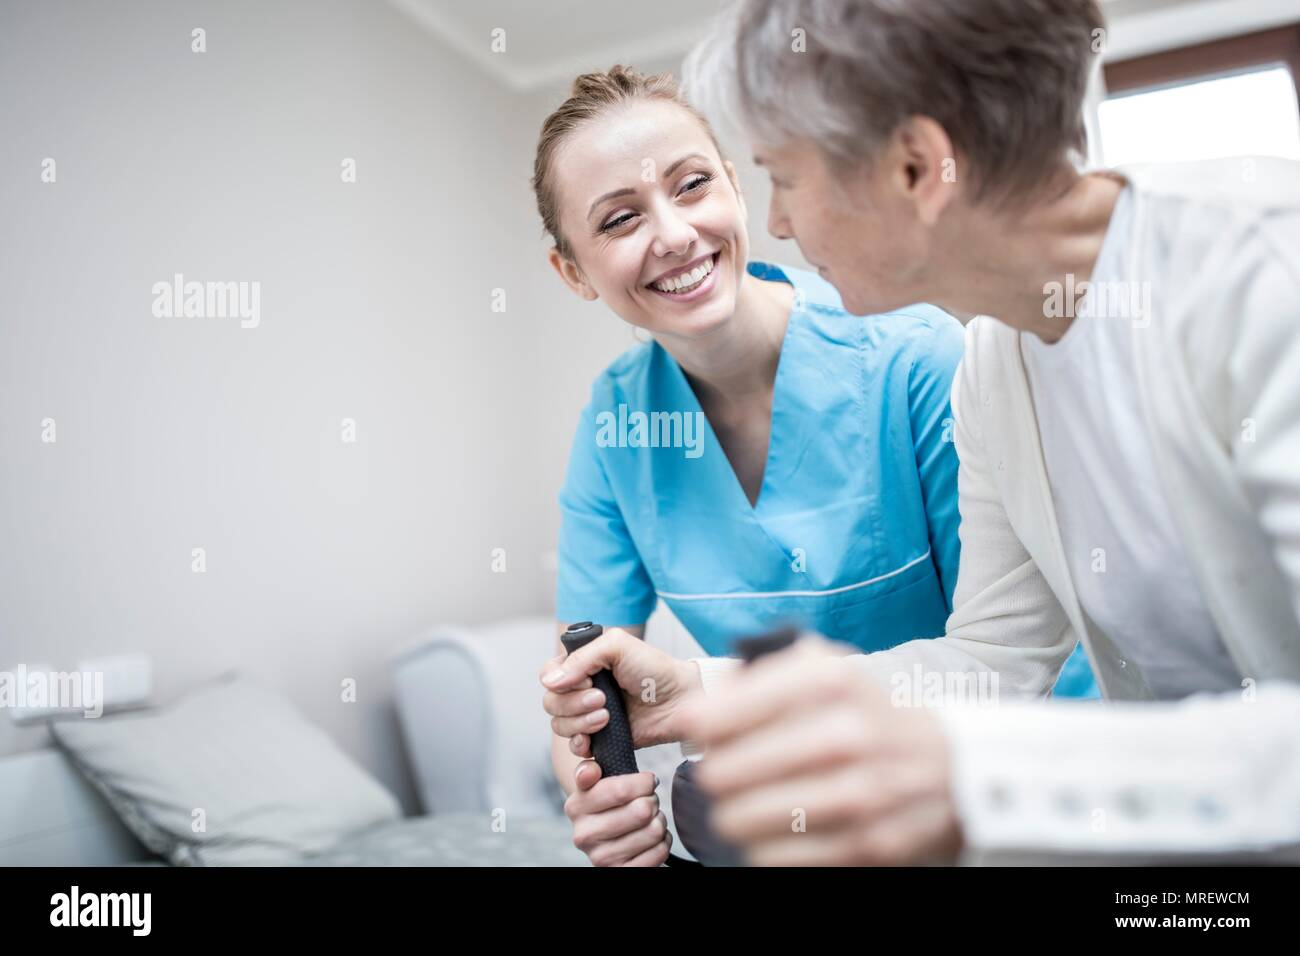 Senior woman using rollator with care worker assisting. - Stock Image